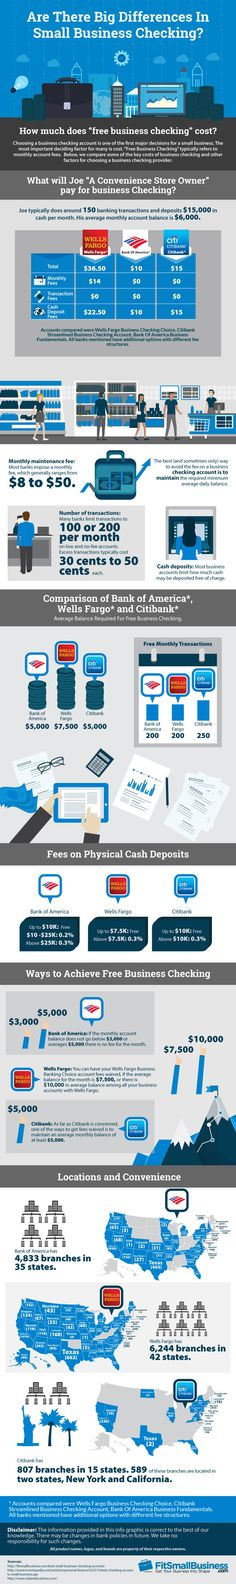 How Much Does Free Business Checking Cost? #Infographic #Business